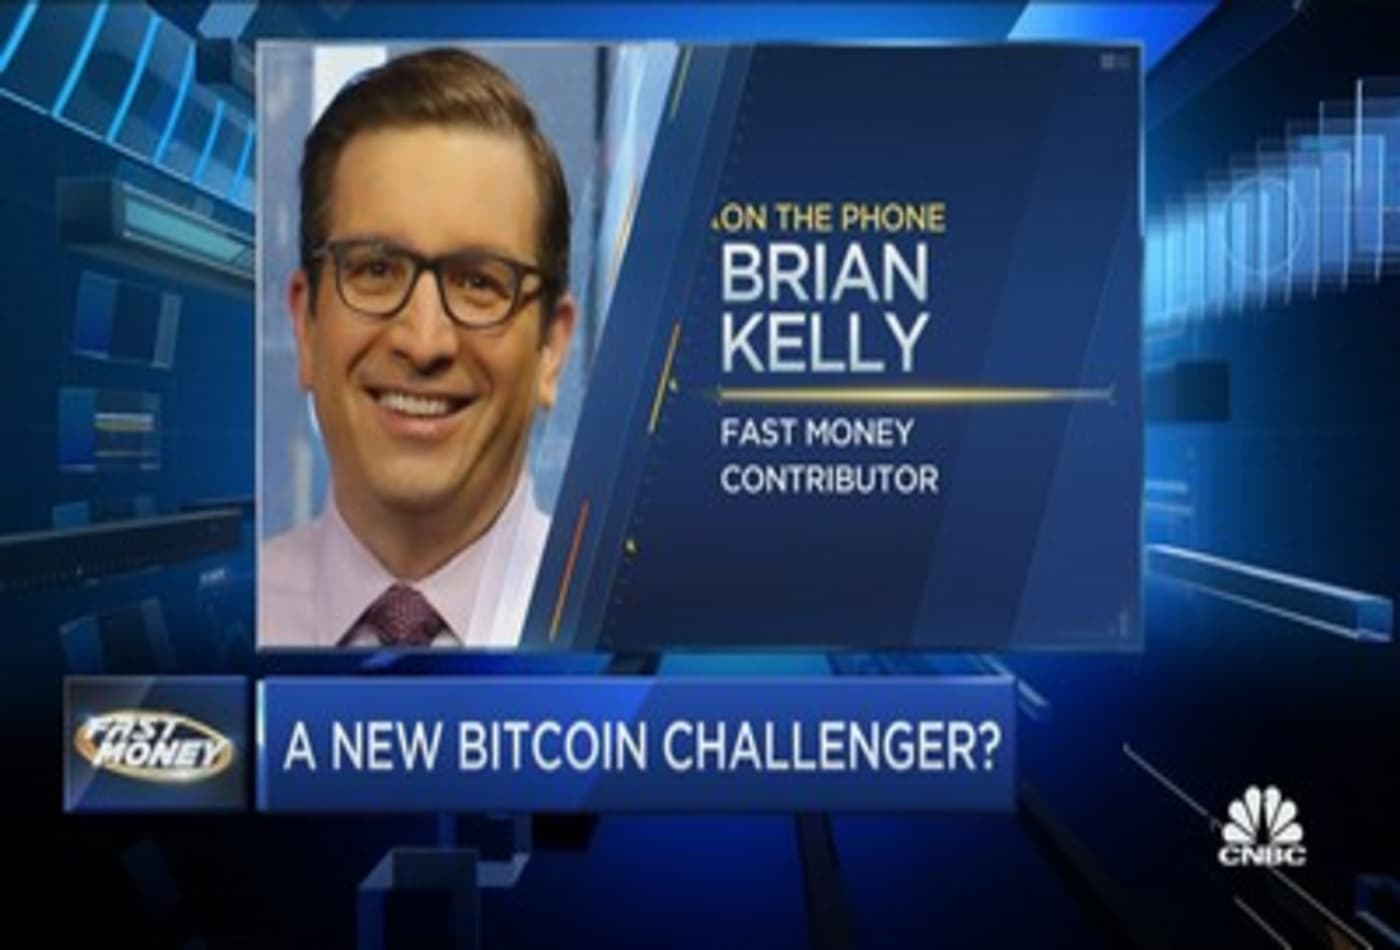 Bitcoin plunges, and could there be a new challenger on the way